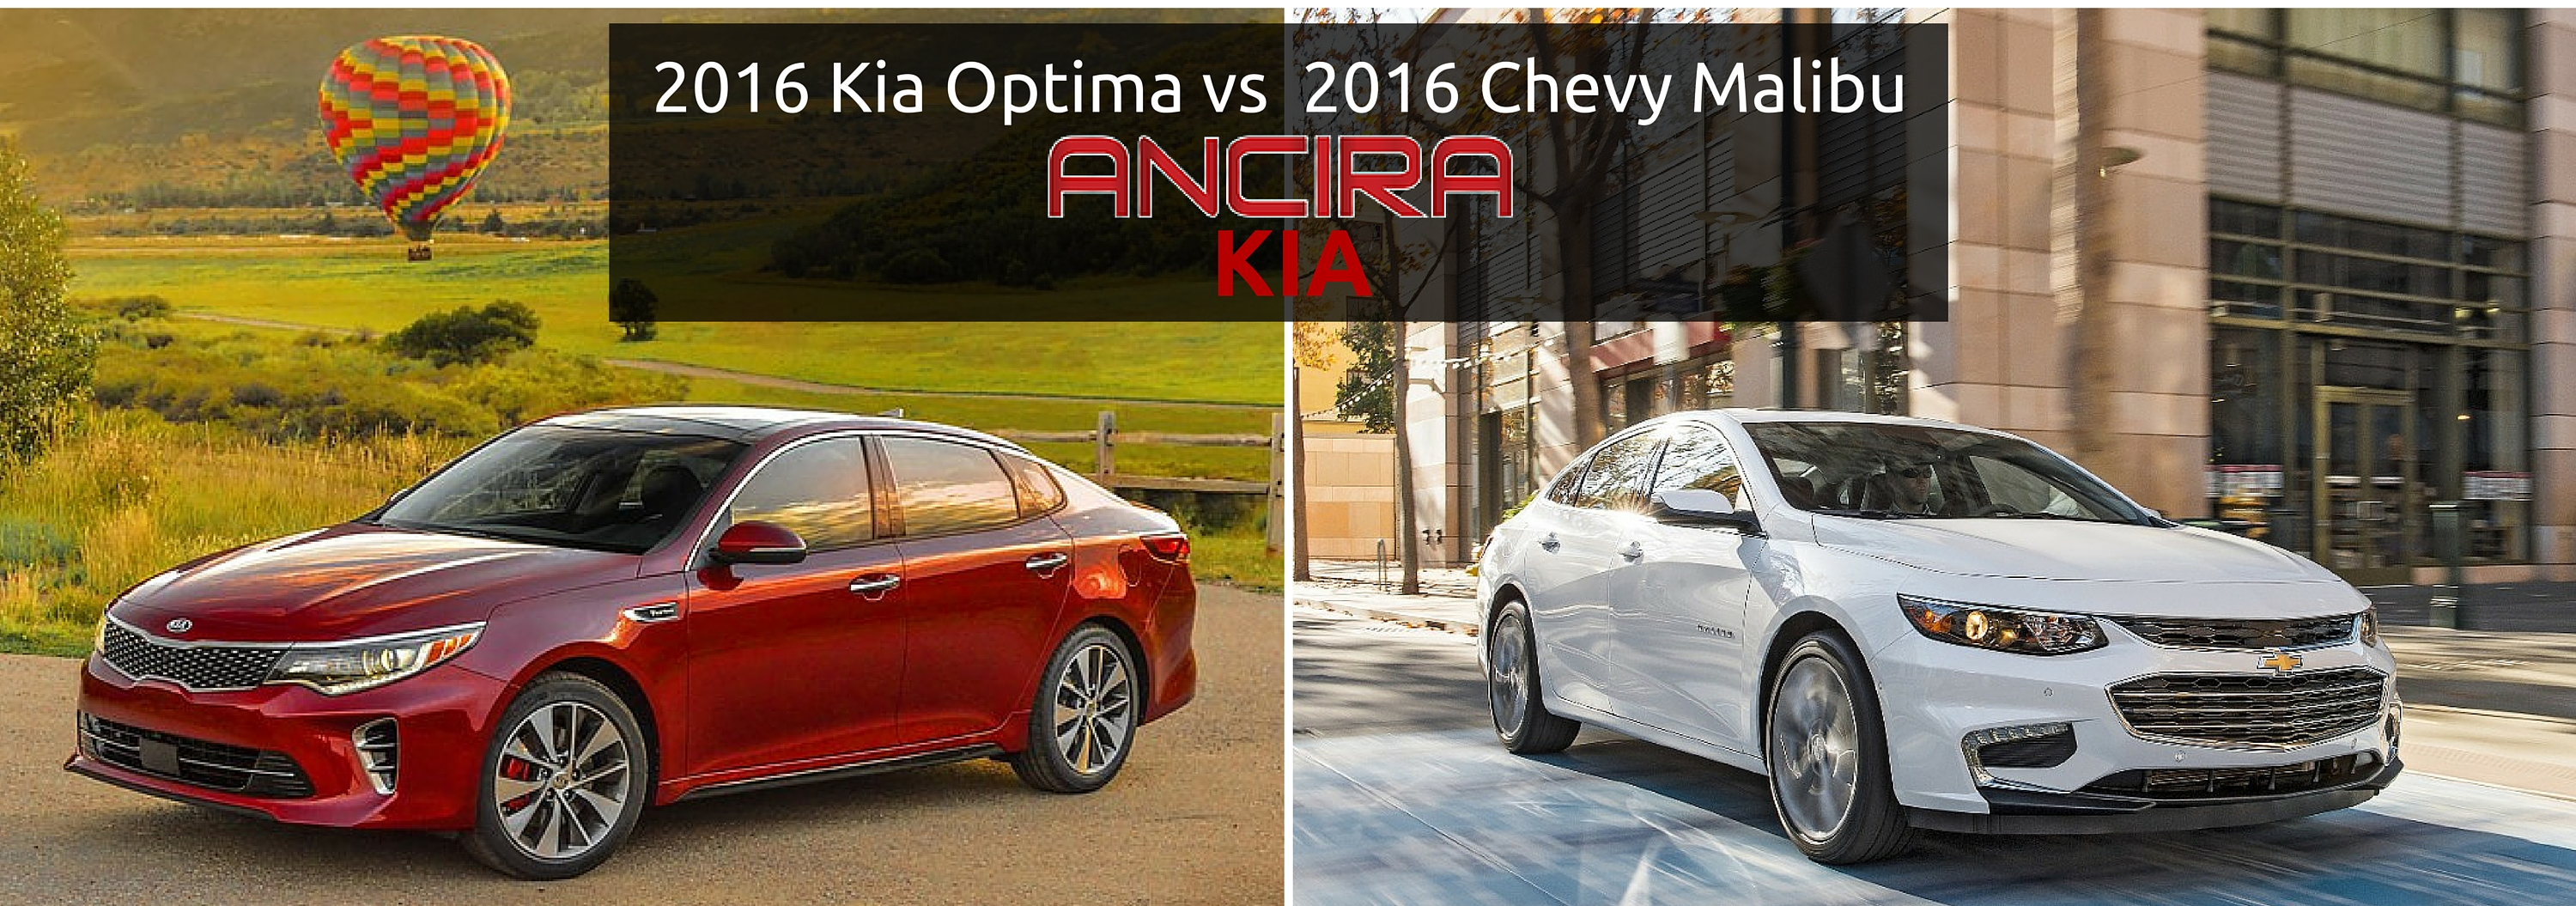 2016 kia optima vs 2016 chevy malibu uncategorized. Black Bedroom Furniture Sets. Home Design Ideas